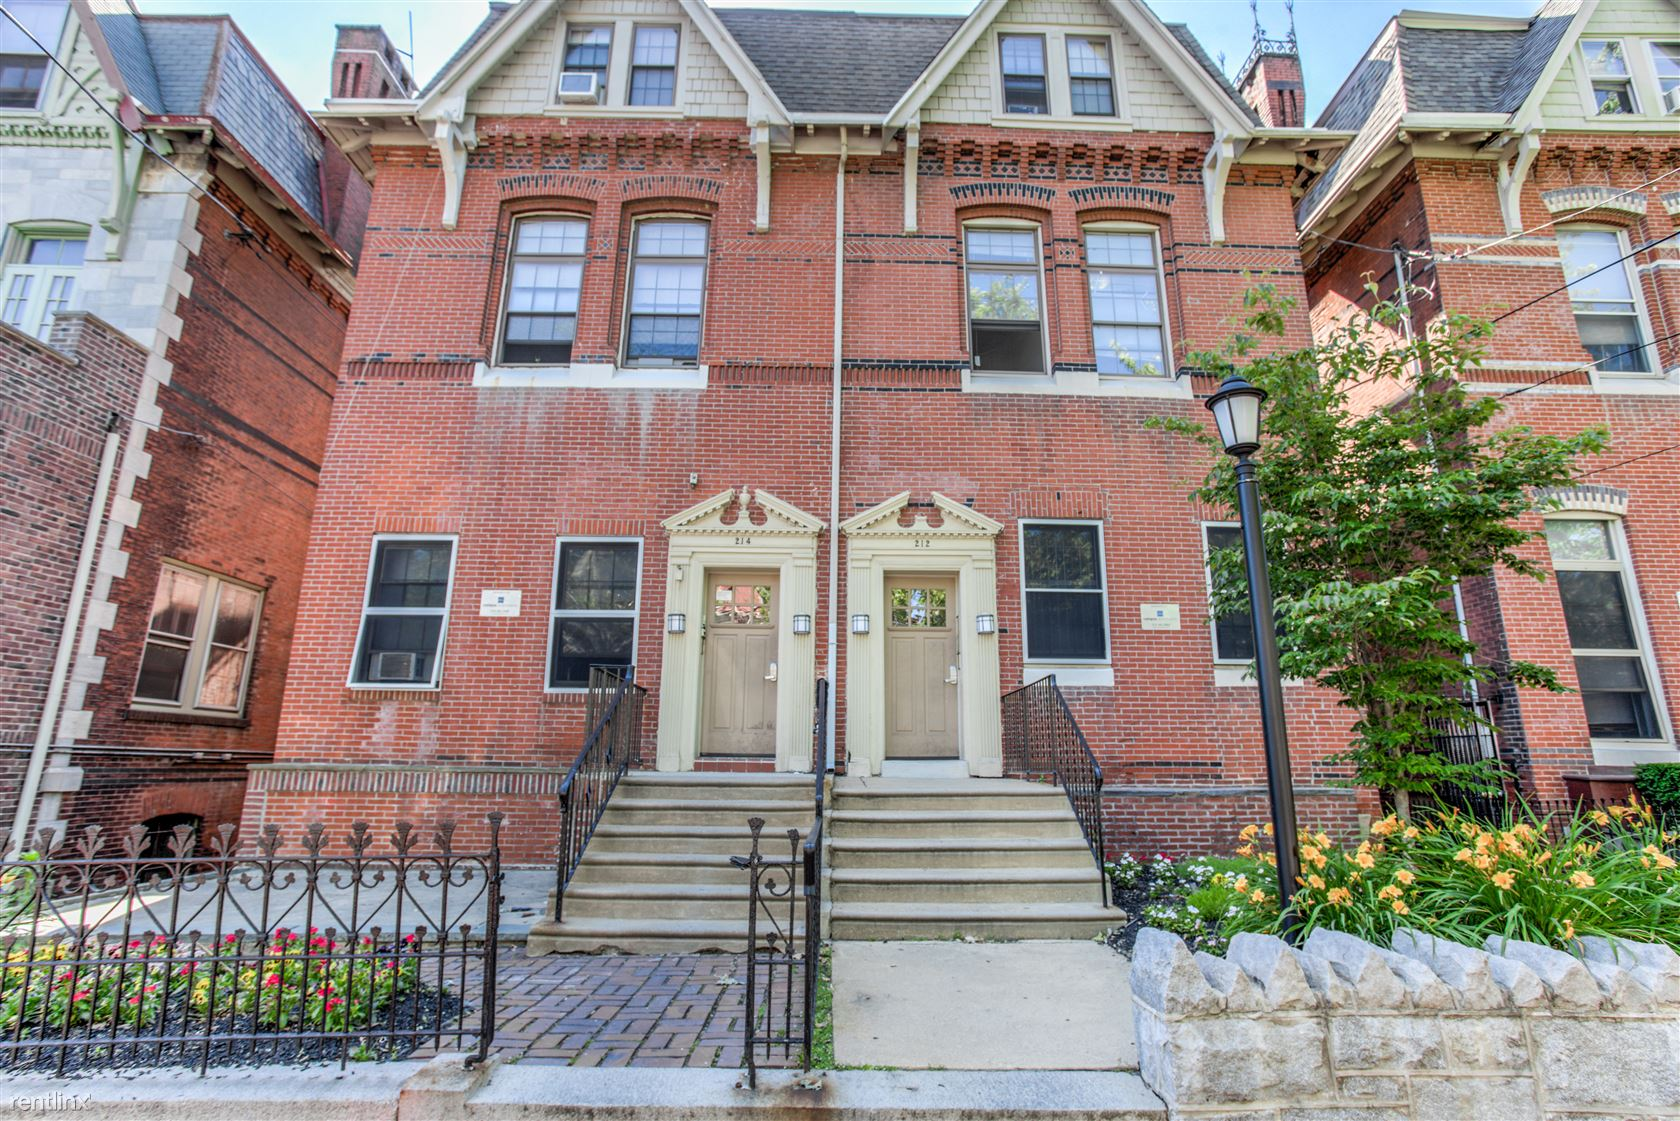 212 S 42nd St - 1530USD / month